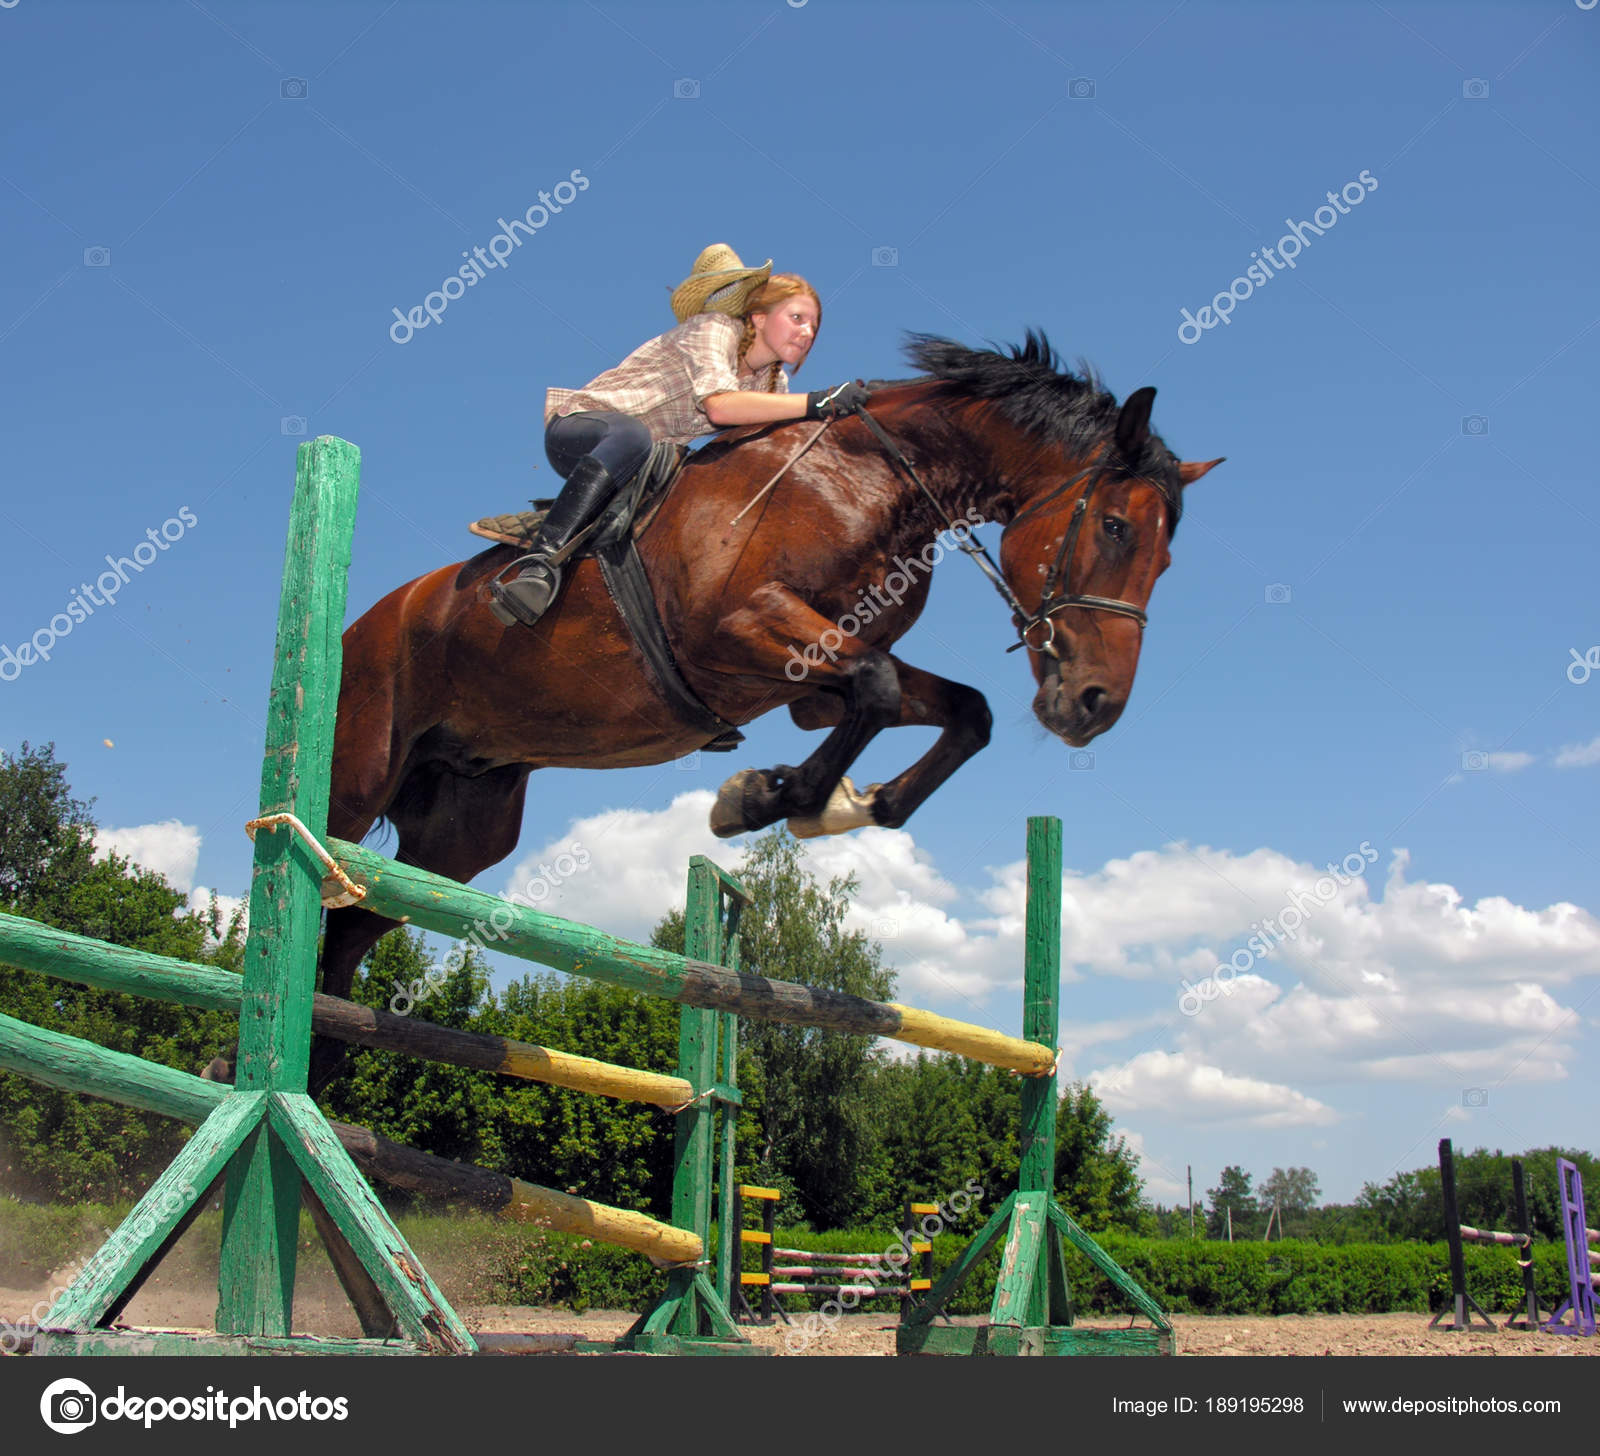 Young Cowgirl Jumping With Chestnut Horse Stock Photo C York010 189195298